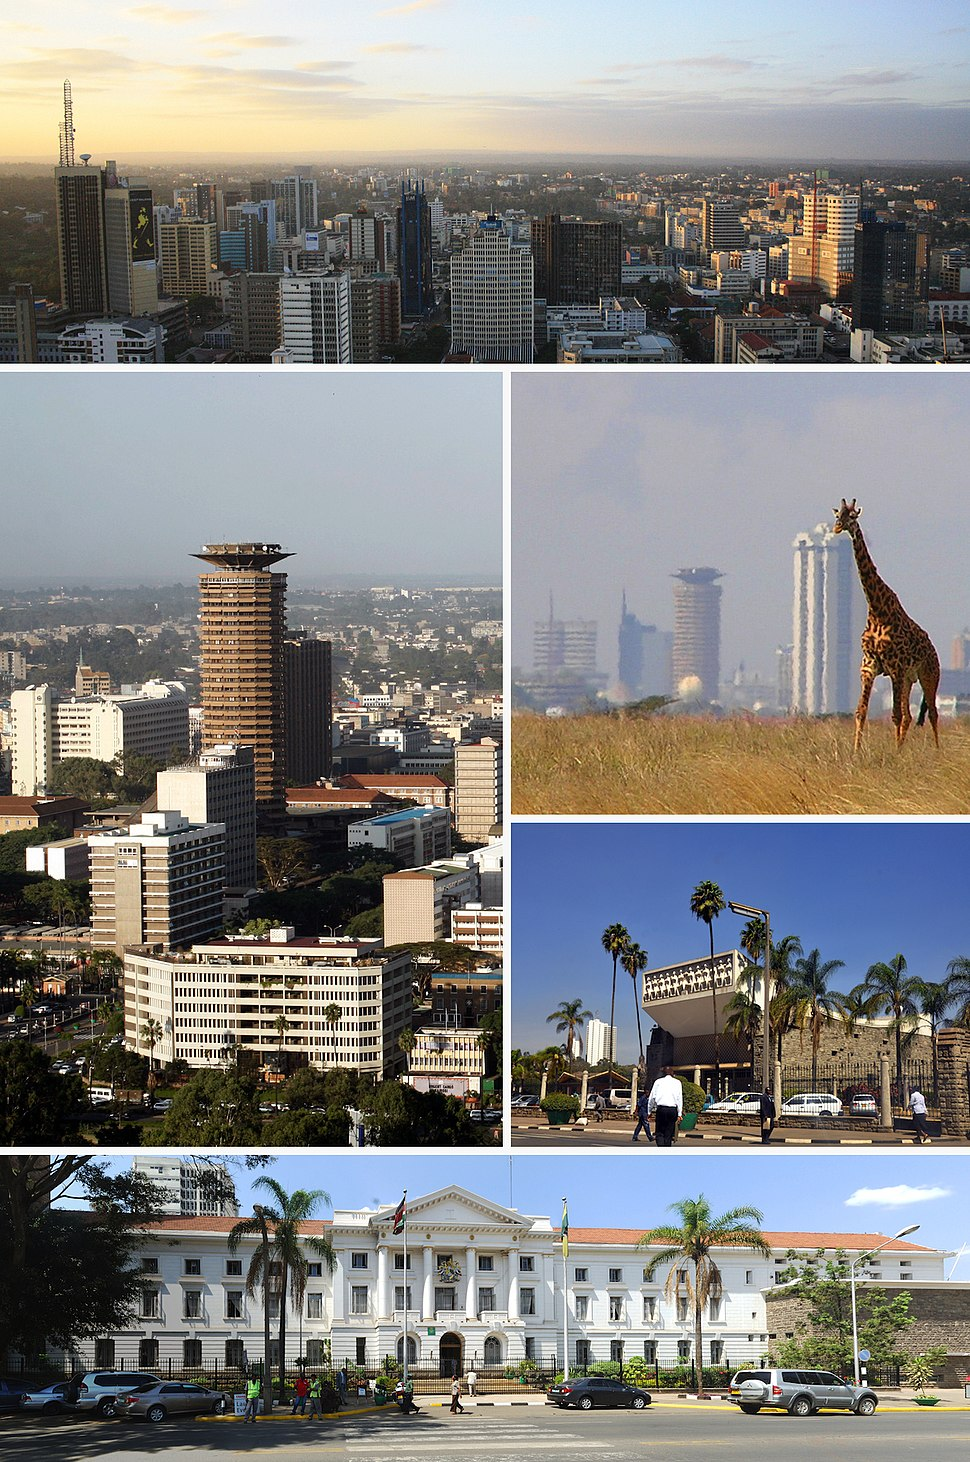 Clockwise from top: Central business district, Nairobi National Park, Parliament of Kenya, Nairobi City Hall and the Kenyatta International Conference Centre.